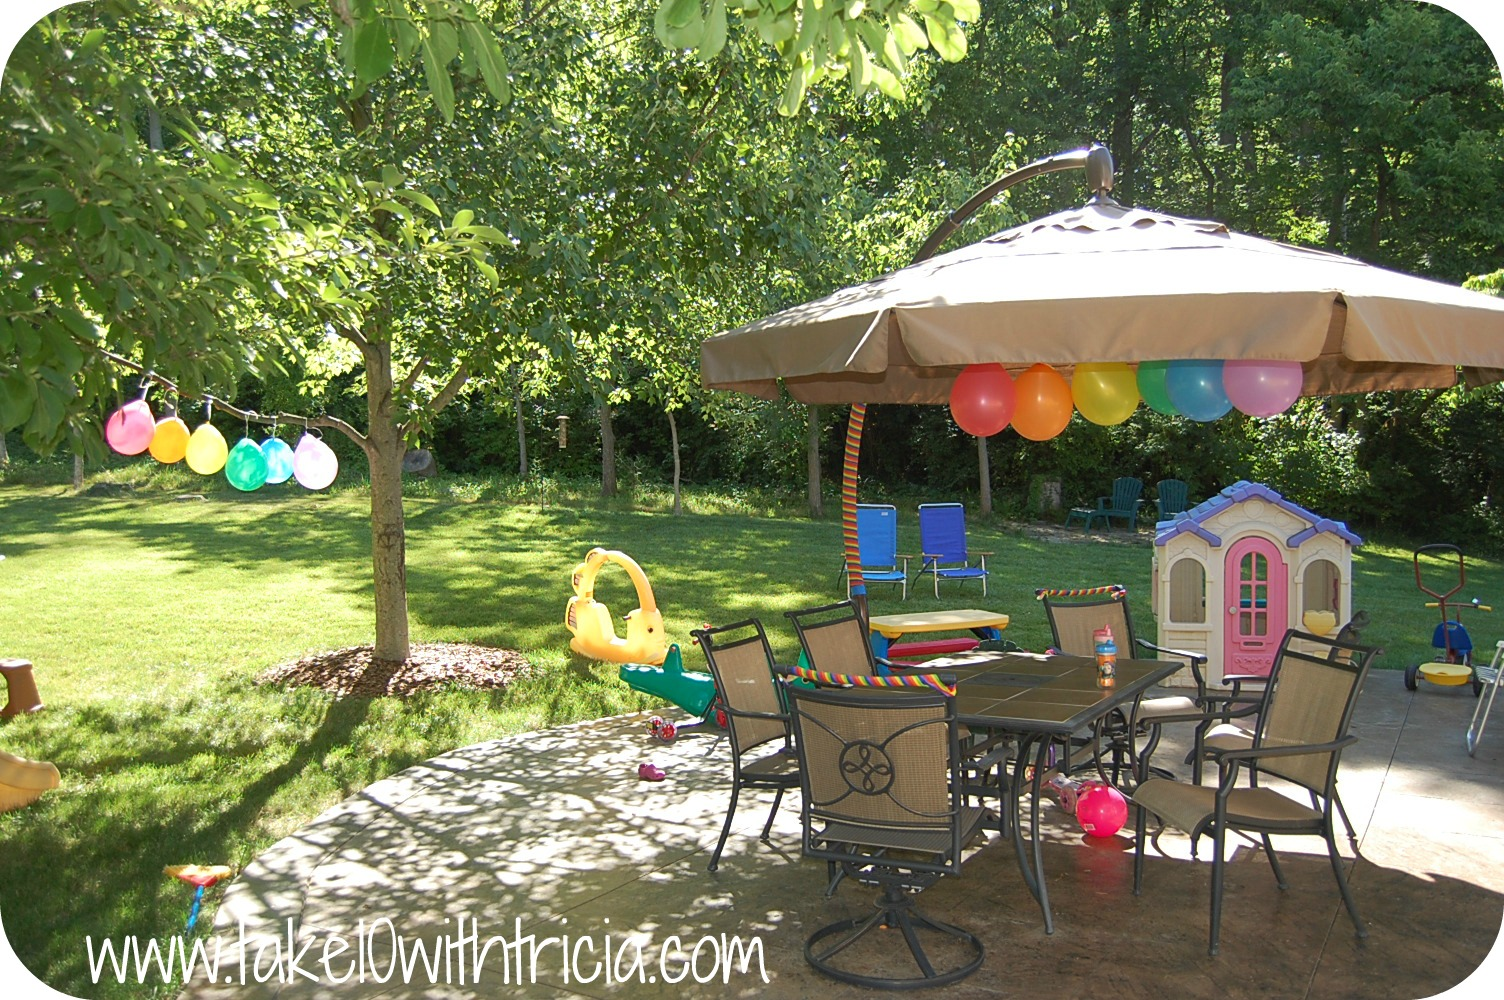 Rainbow birthday party take 10 with tricia for Backyard party decoration ideas